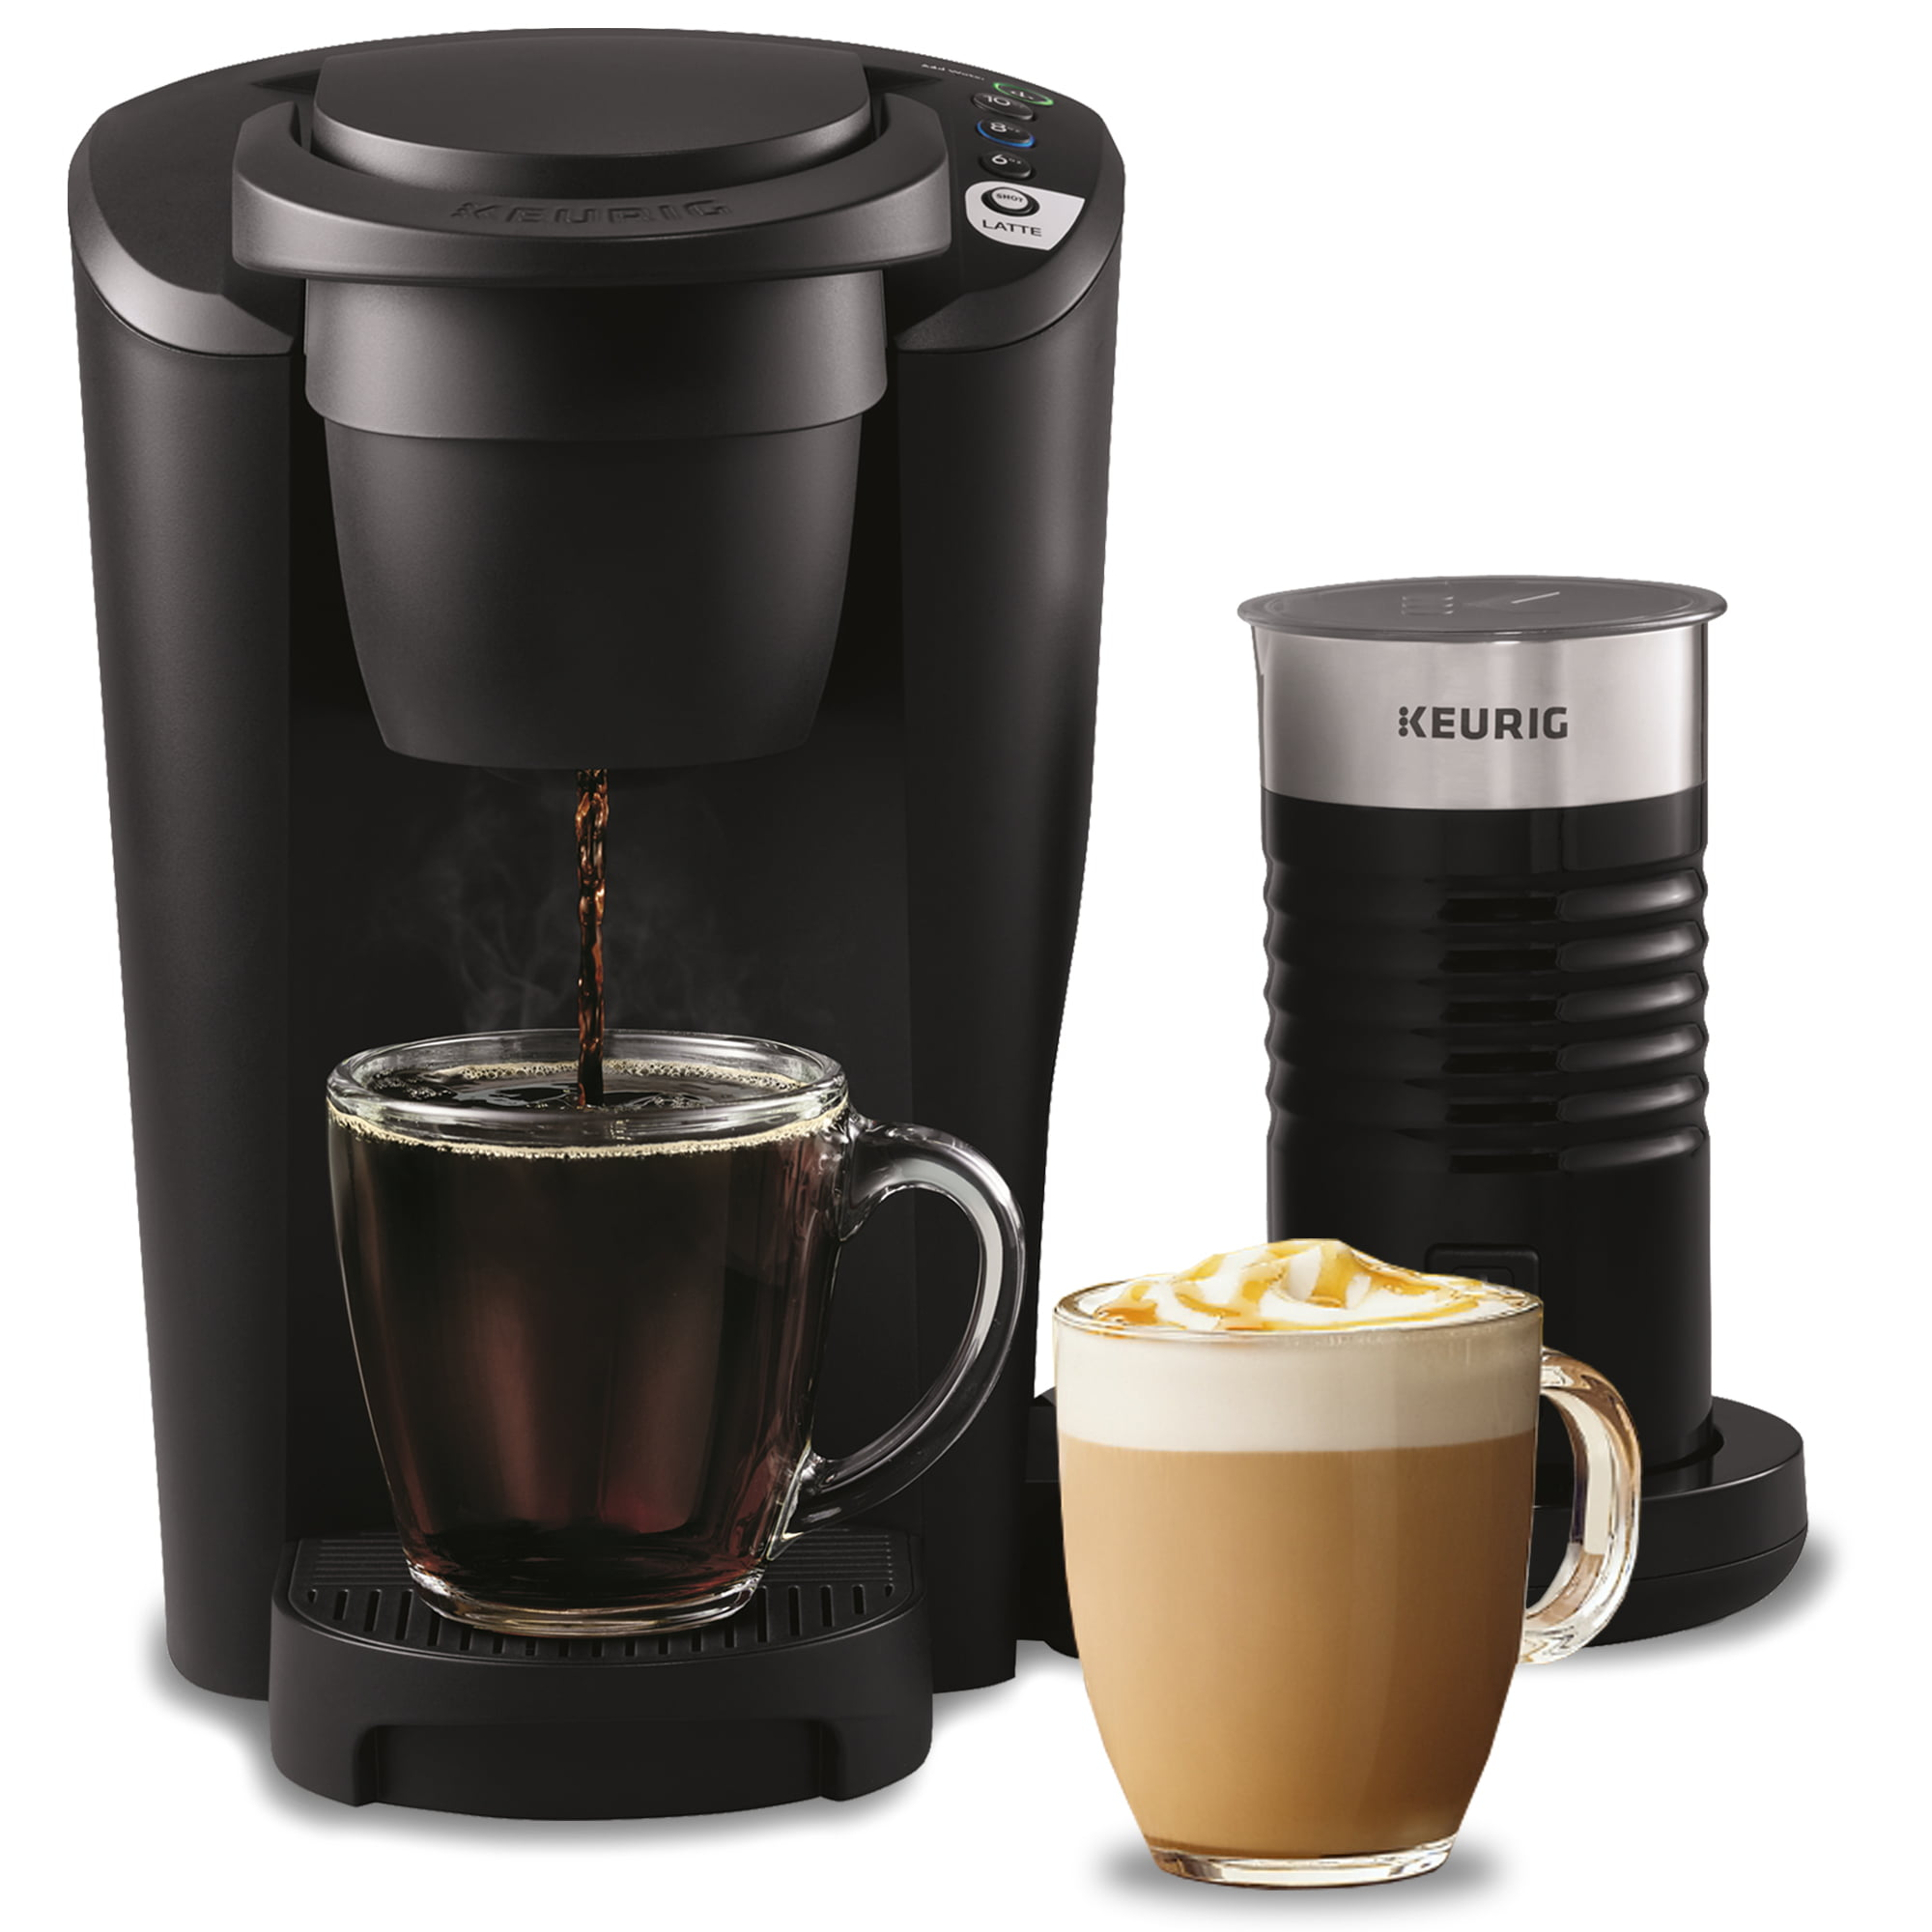 Keurig K-Latte Coffee Maker With Milk Frother, Compatible